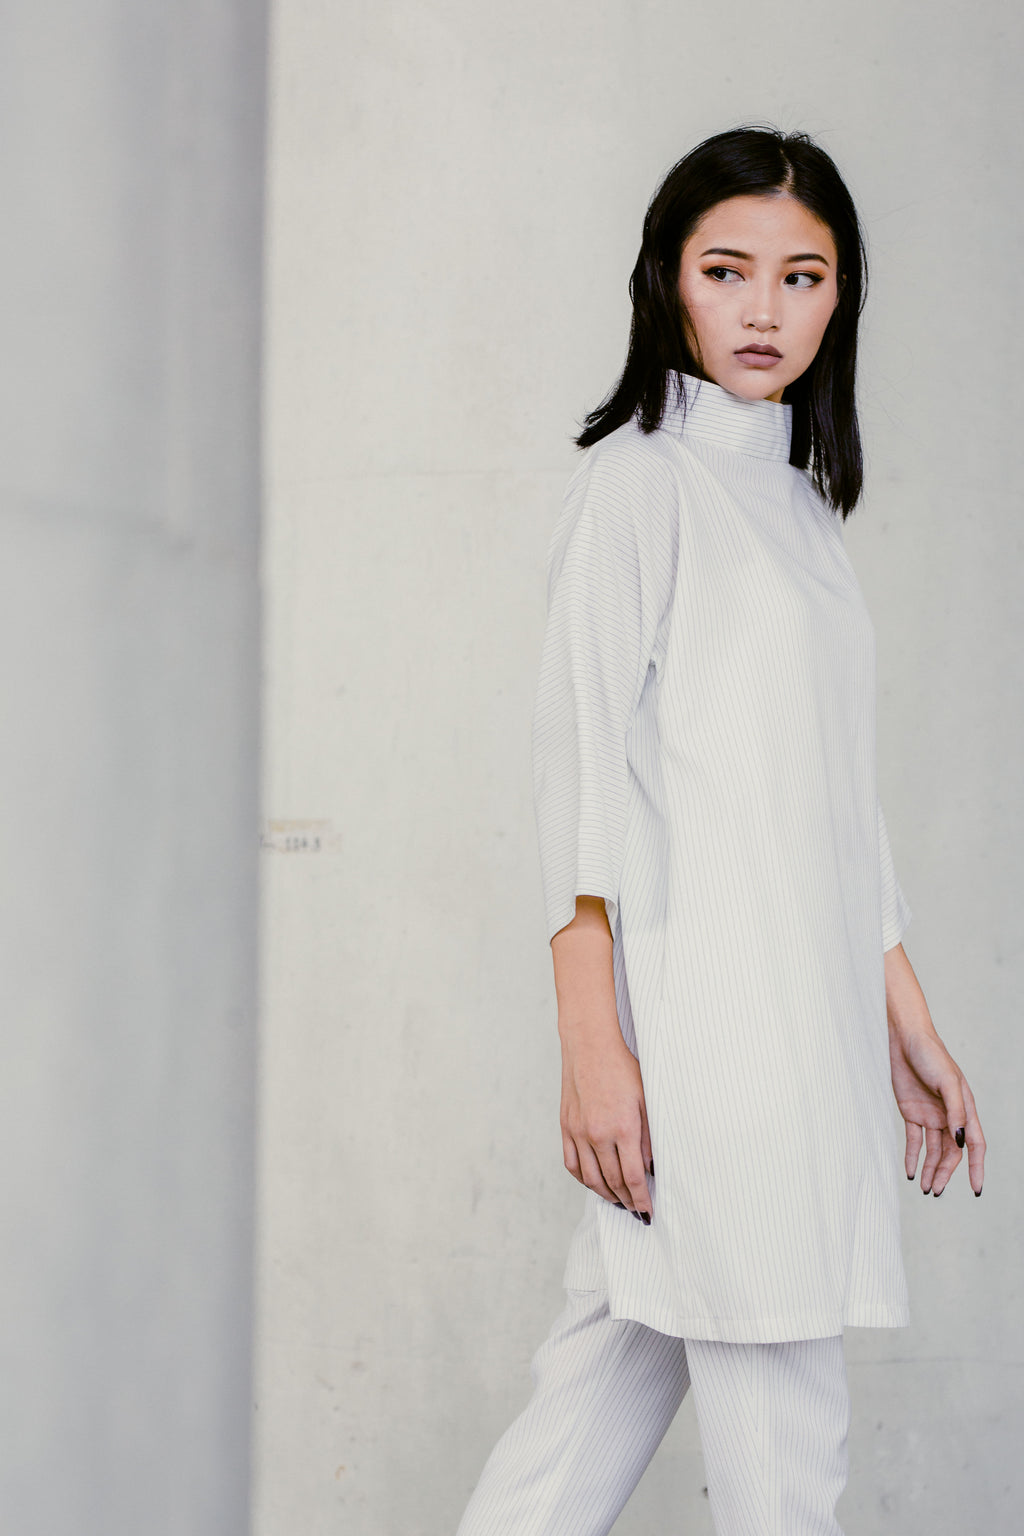 MINIMALIST White Dress Top